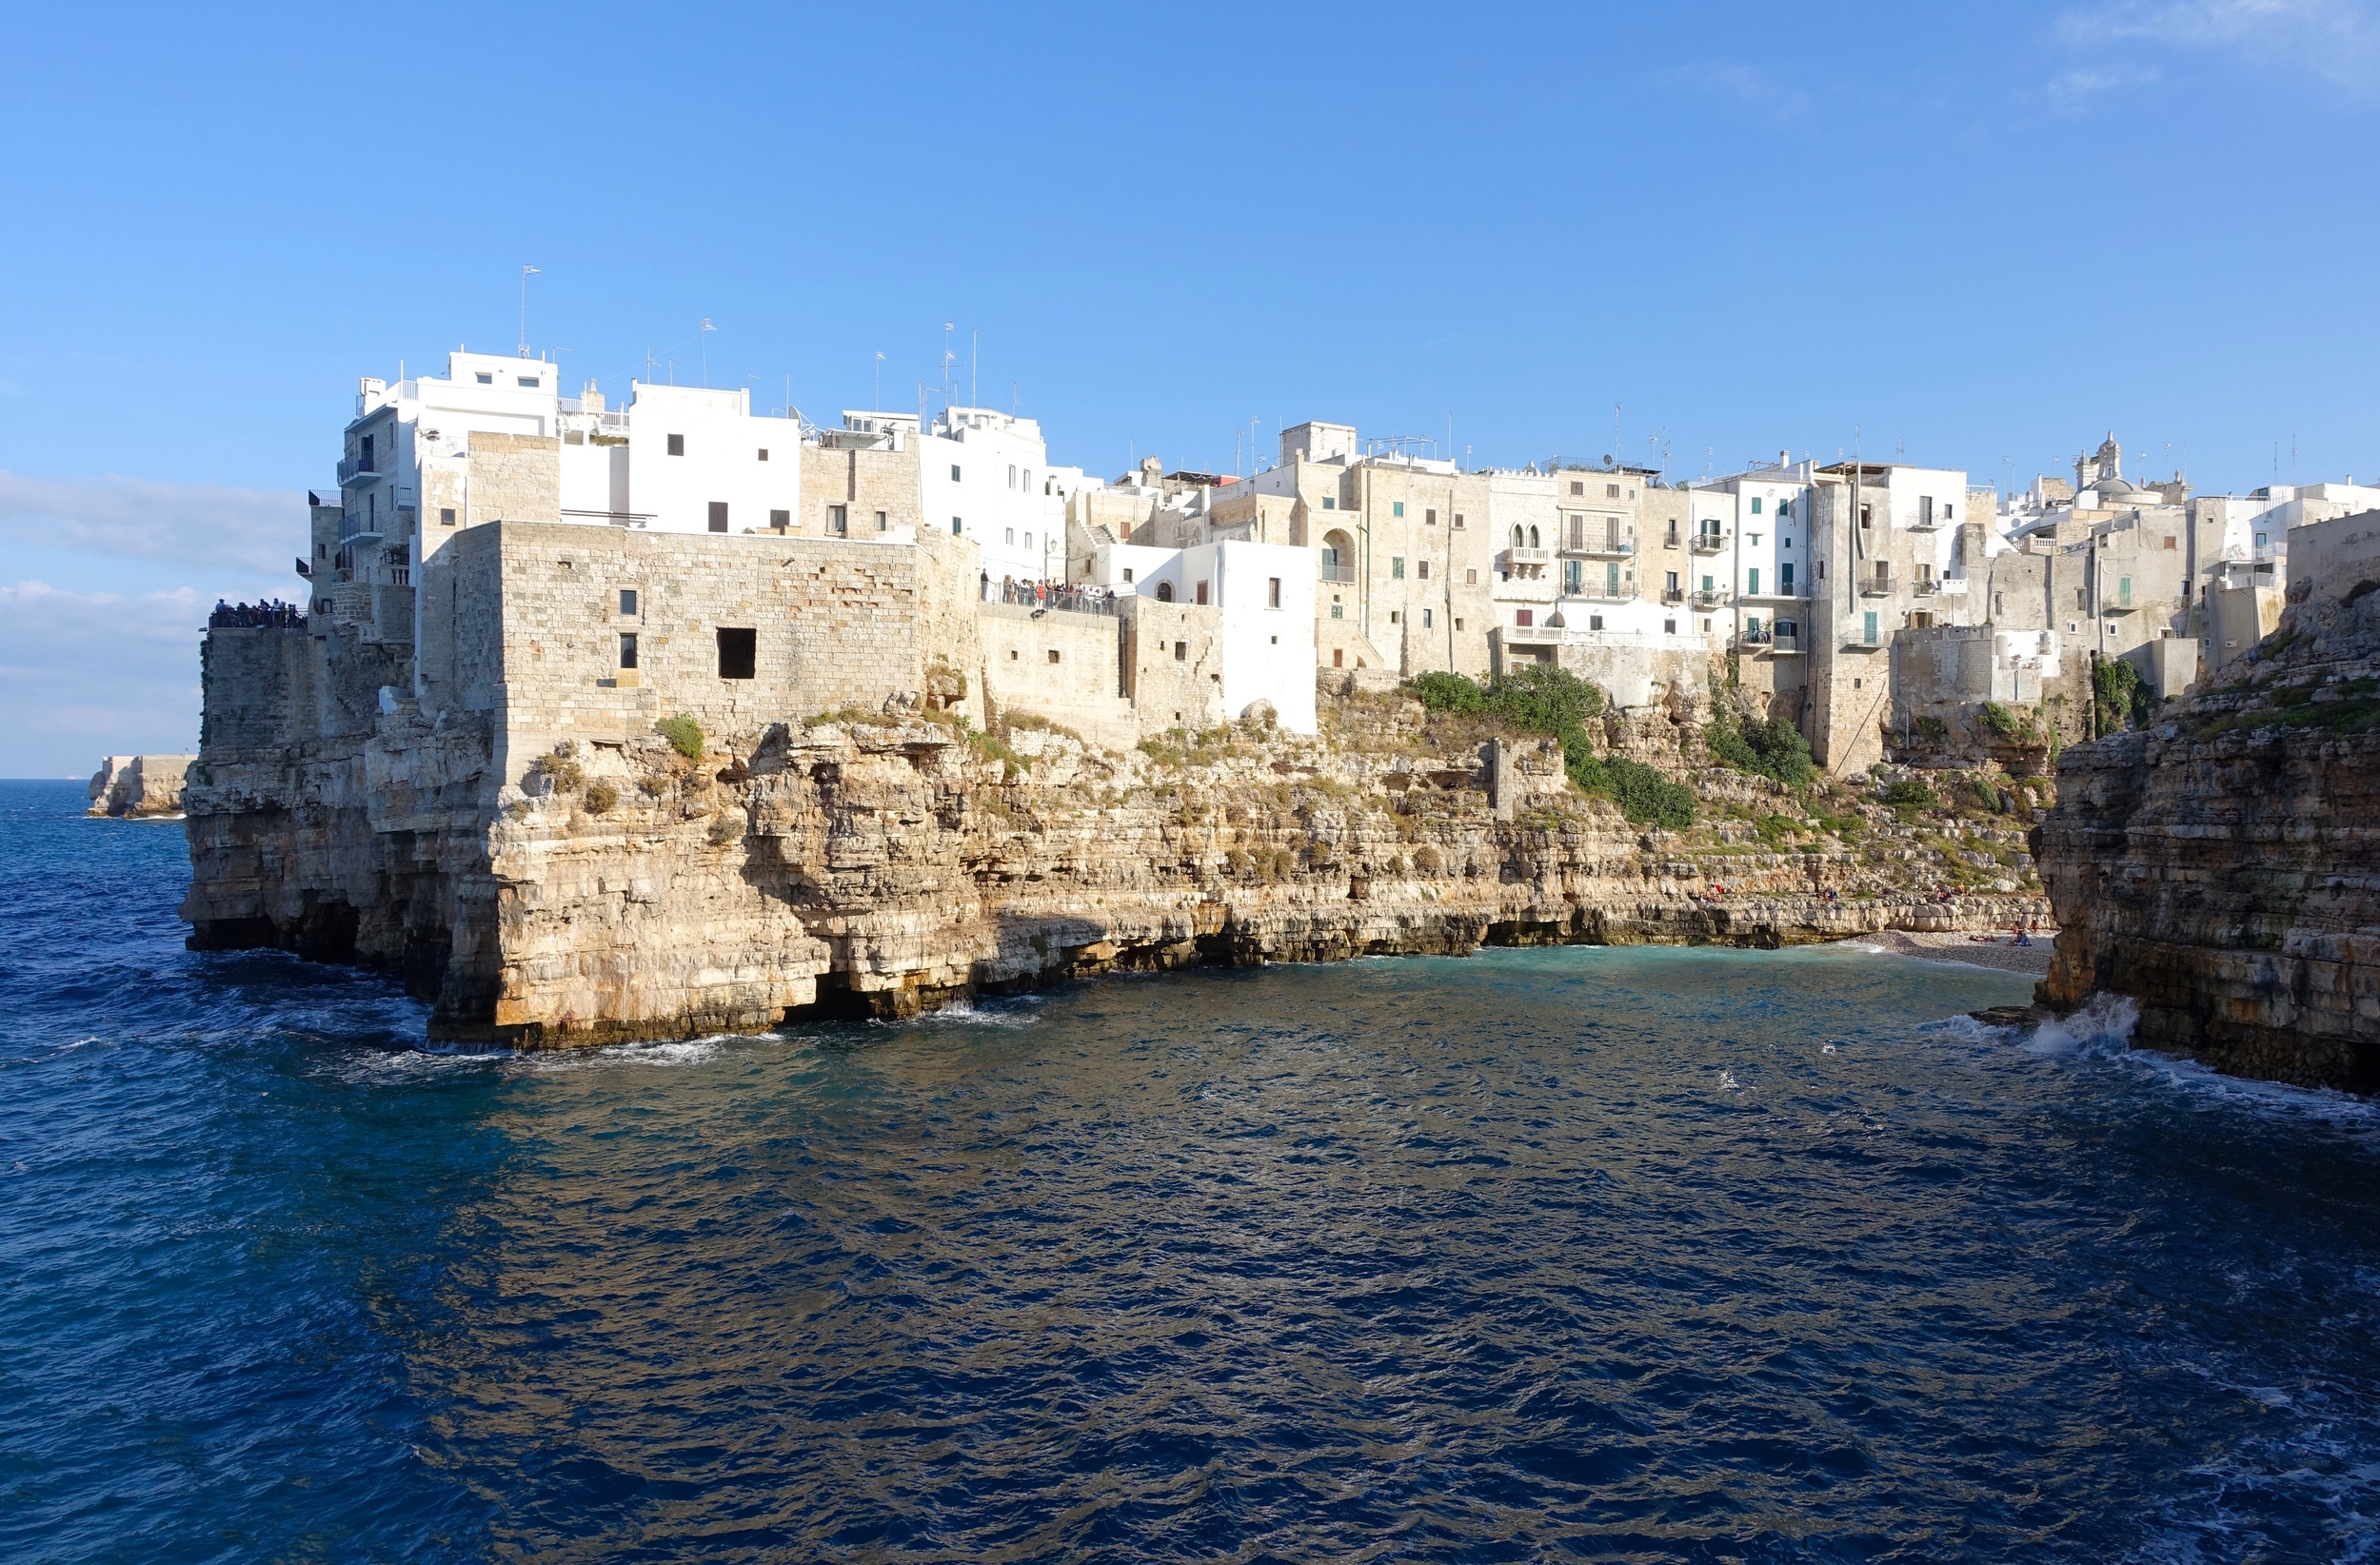 PUGLIA: OFF THE BEATEN PATH